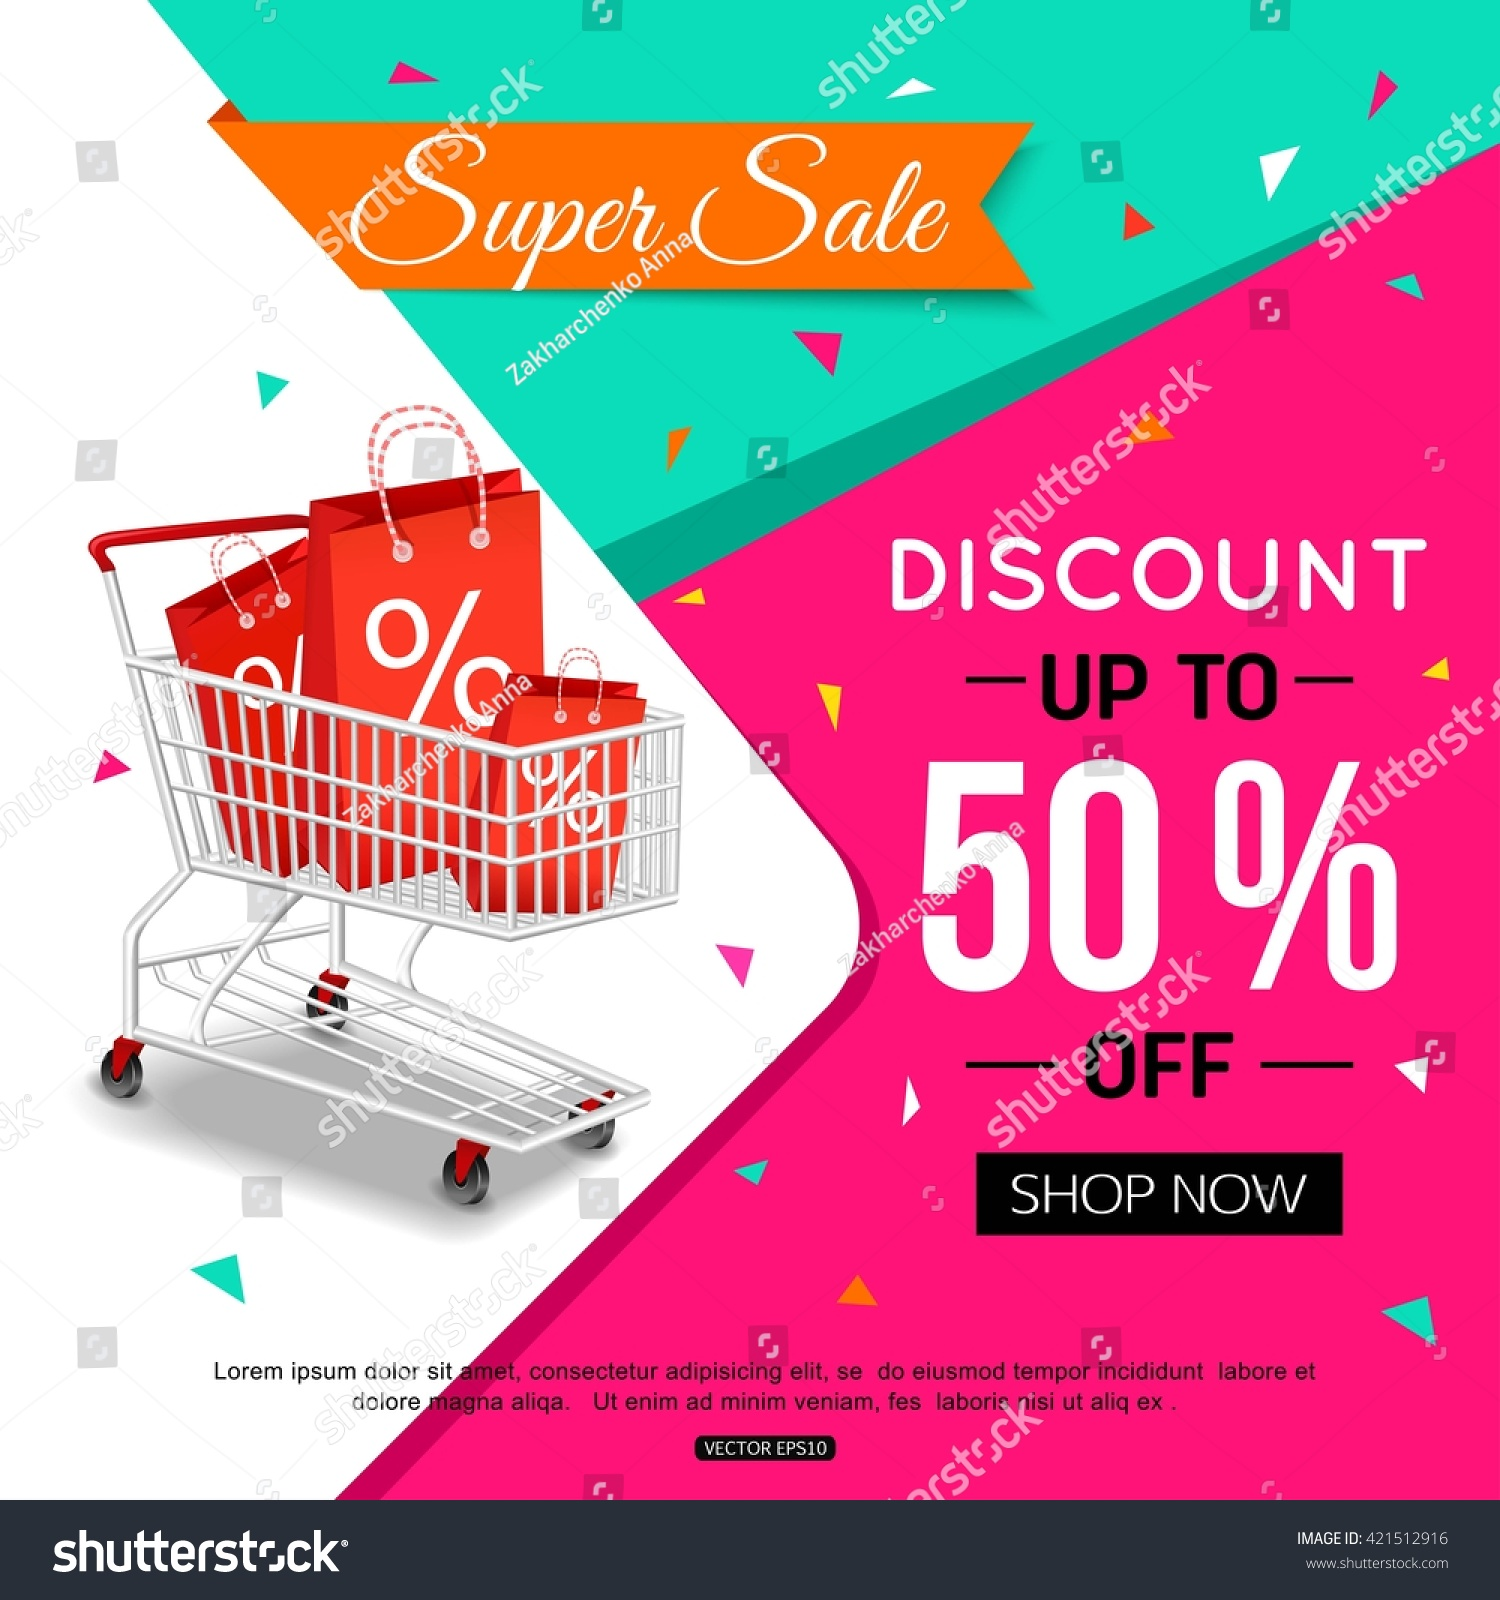 super sale banner design shop online stock vector 421512916 shutterstock. Black Bedroom Furniture Sets. Home Design Ideas